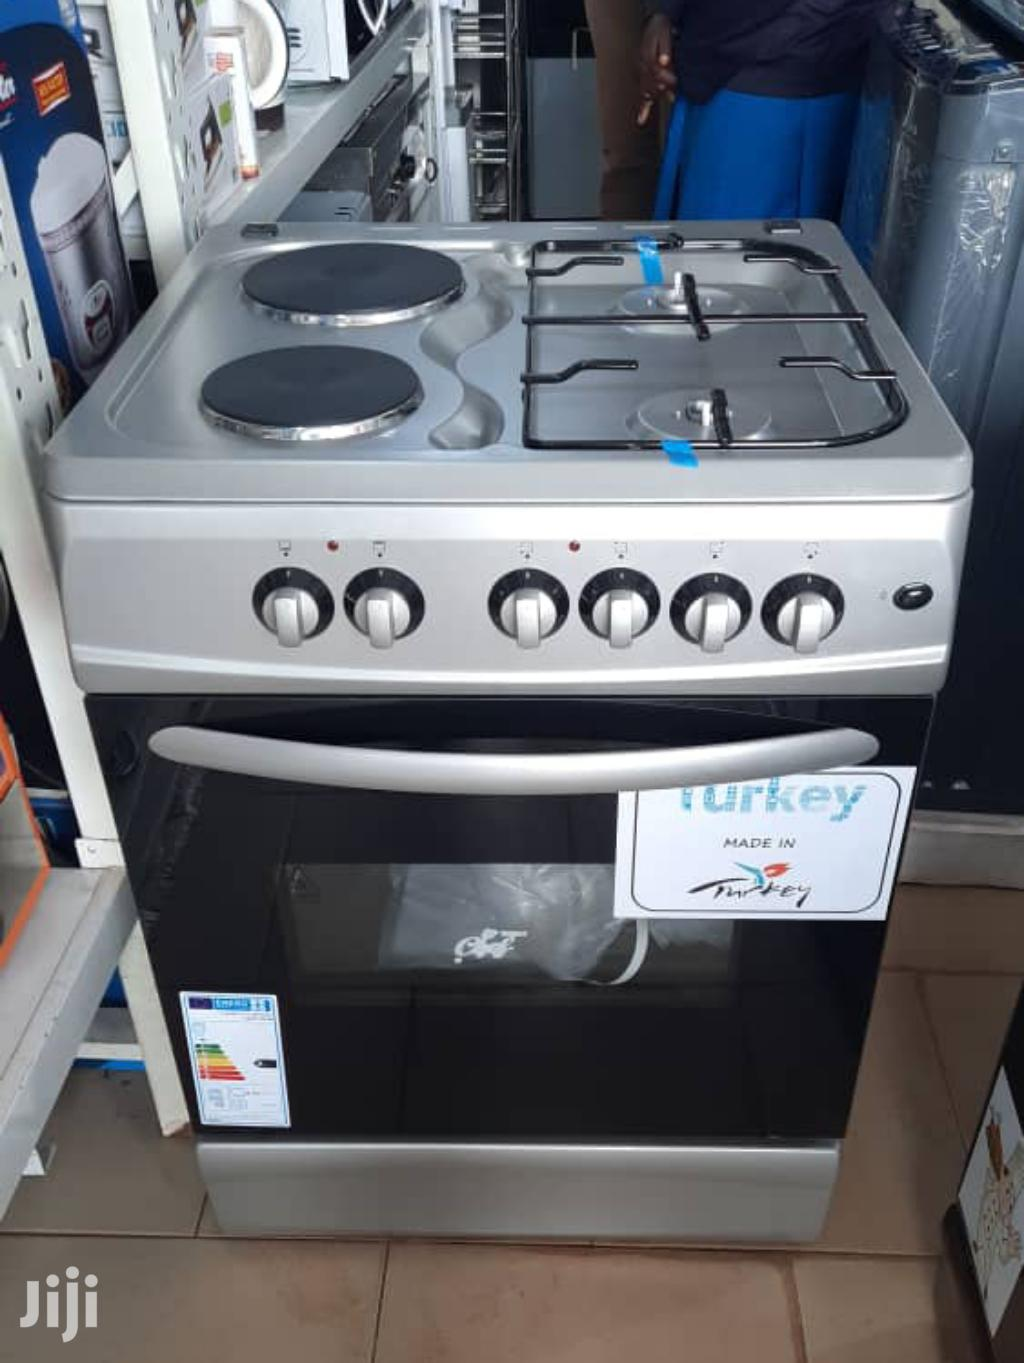 Super Chef 2 Gas 2 Electric Cooker In Kampala Kitchen Appliances Goodeedz Online Shopping Jiji Ug For Sale In Kampala Buy Kitchen Appliances From Goodeedz Online Shopping On Jiji Ug